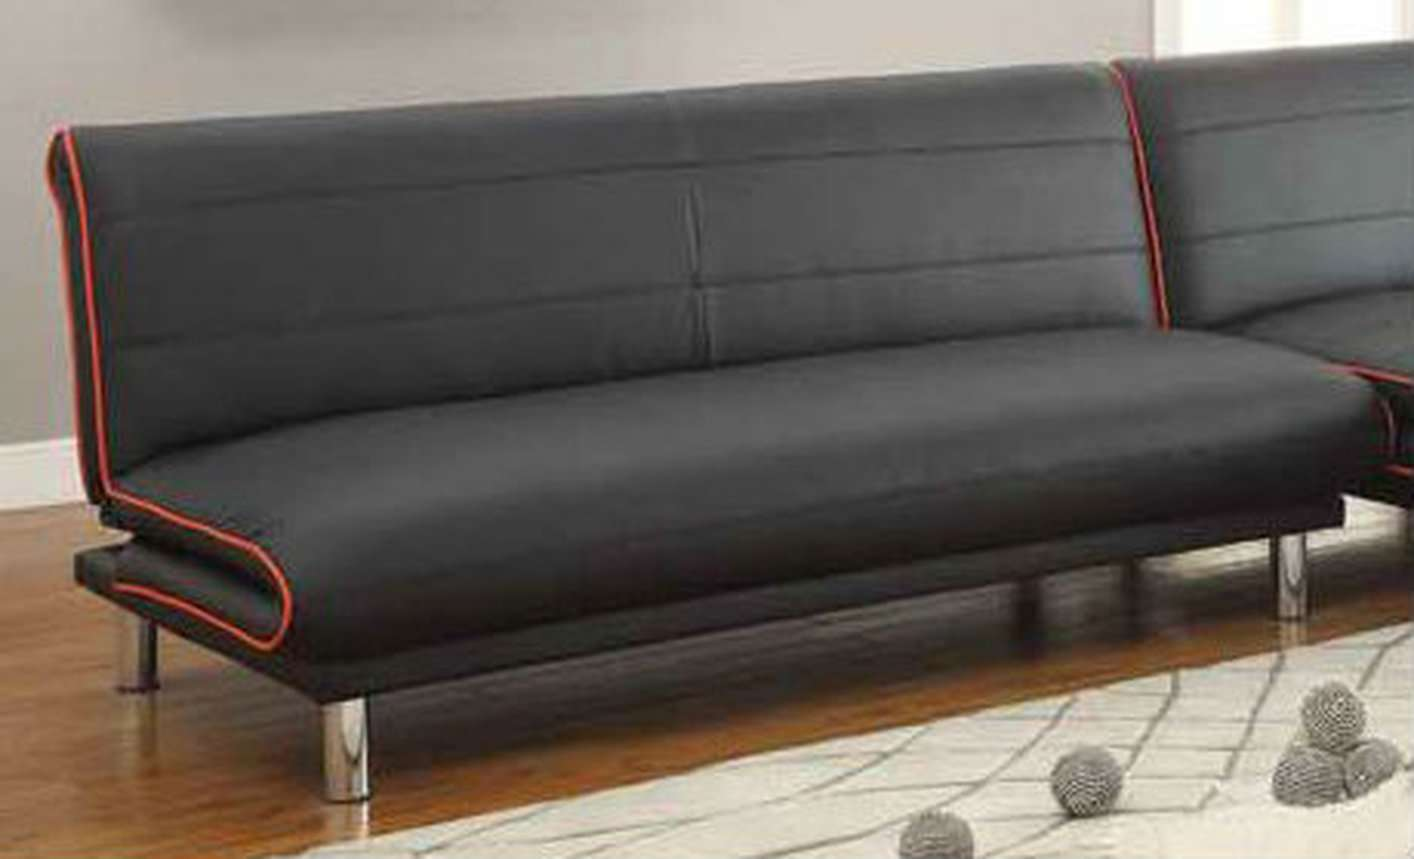 Coaster Black Leather Sofa Bed Steal Furniture Outlet